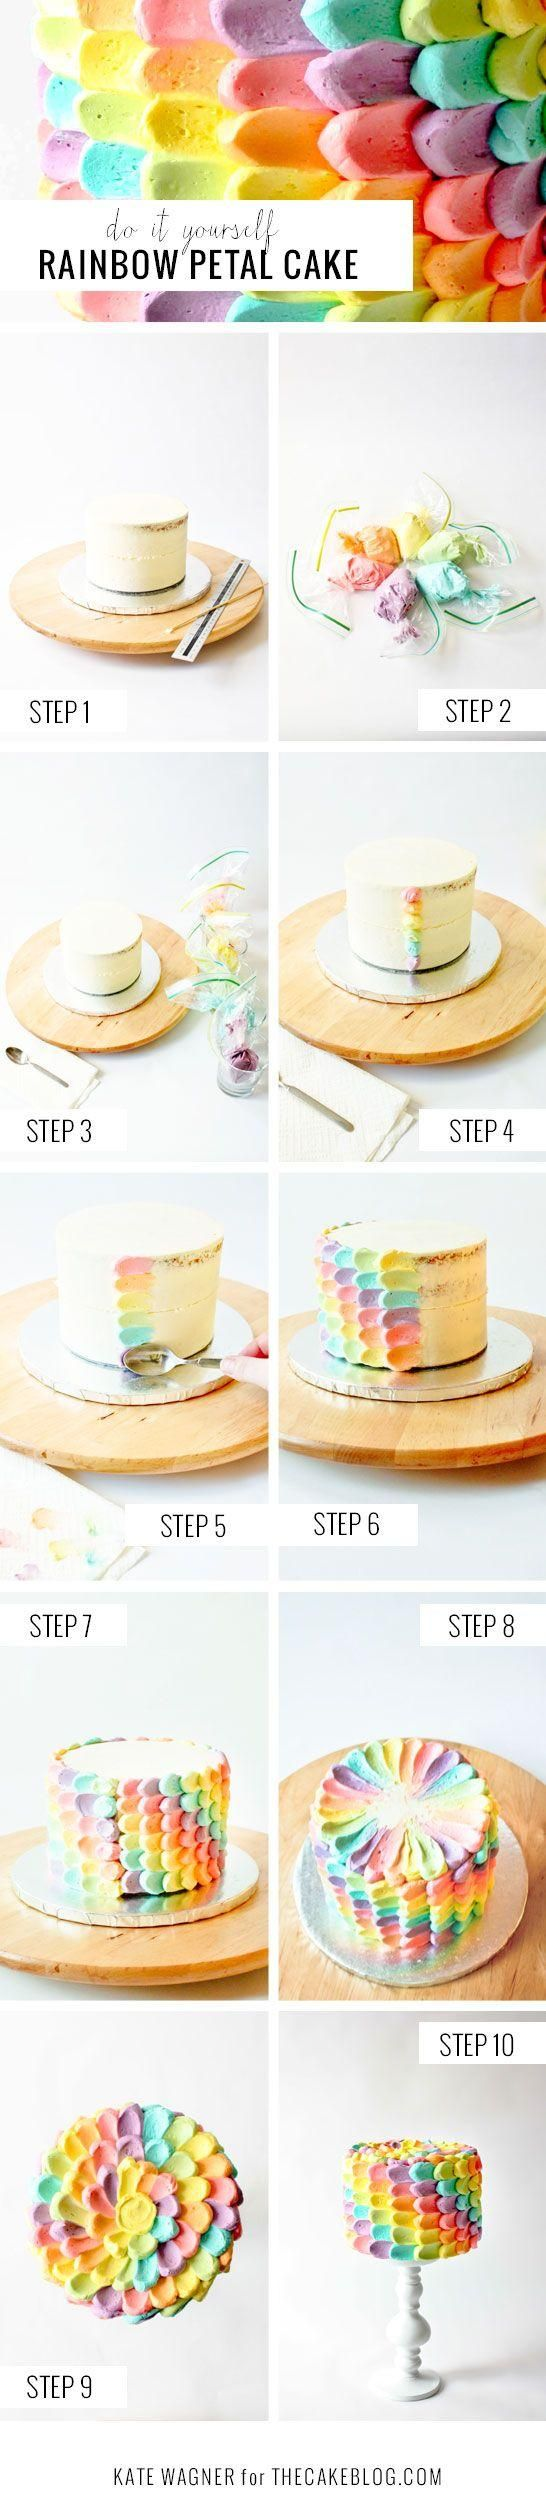 DIY Petal Cake. I would do this with different shades of one color or just two or three coordinating colors instead of rainbow though.: